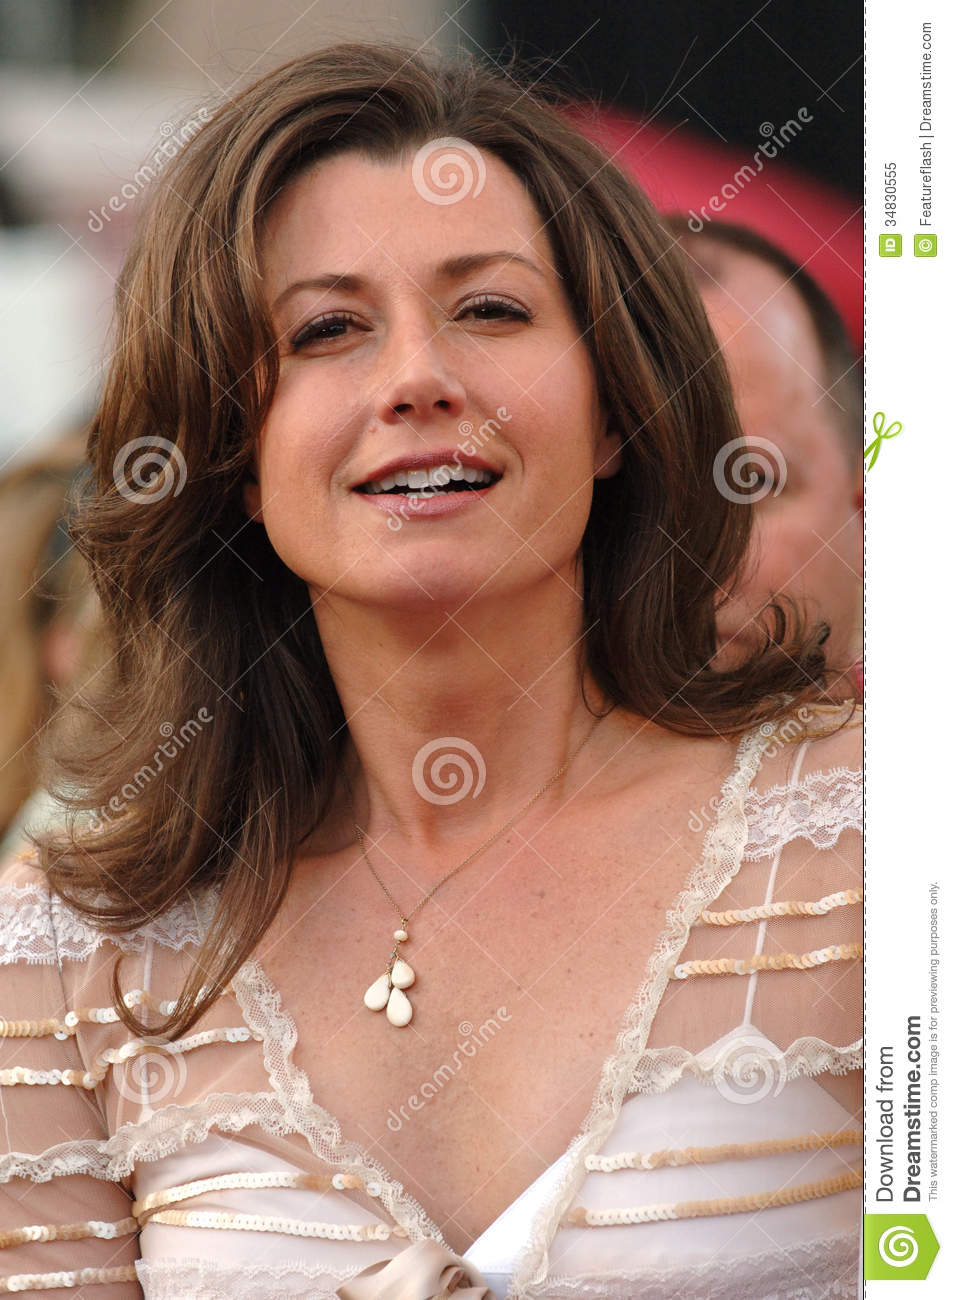 <b>Amy Grant</b> Editorial Image - amy-grant-singer-star-tv-series-three-wishes-party-los-angeles-to-launch-new-season-nbc-tv-july-los-angeles-ca-34830555